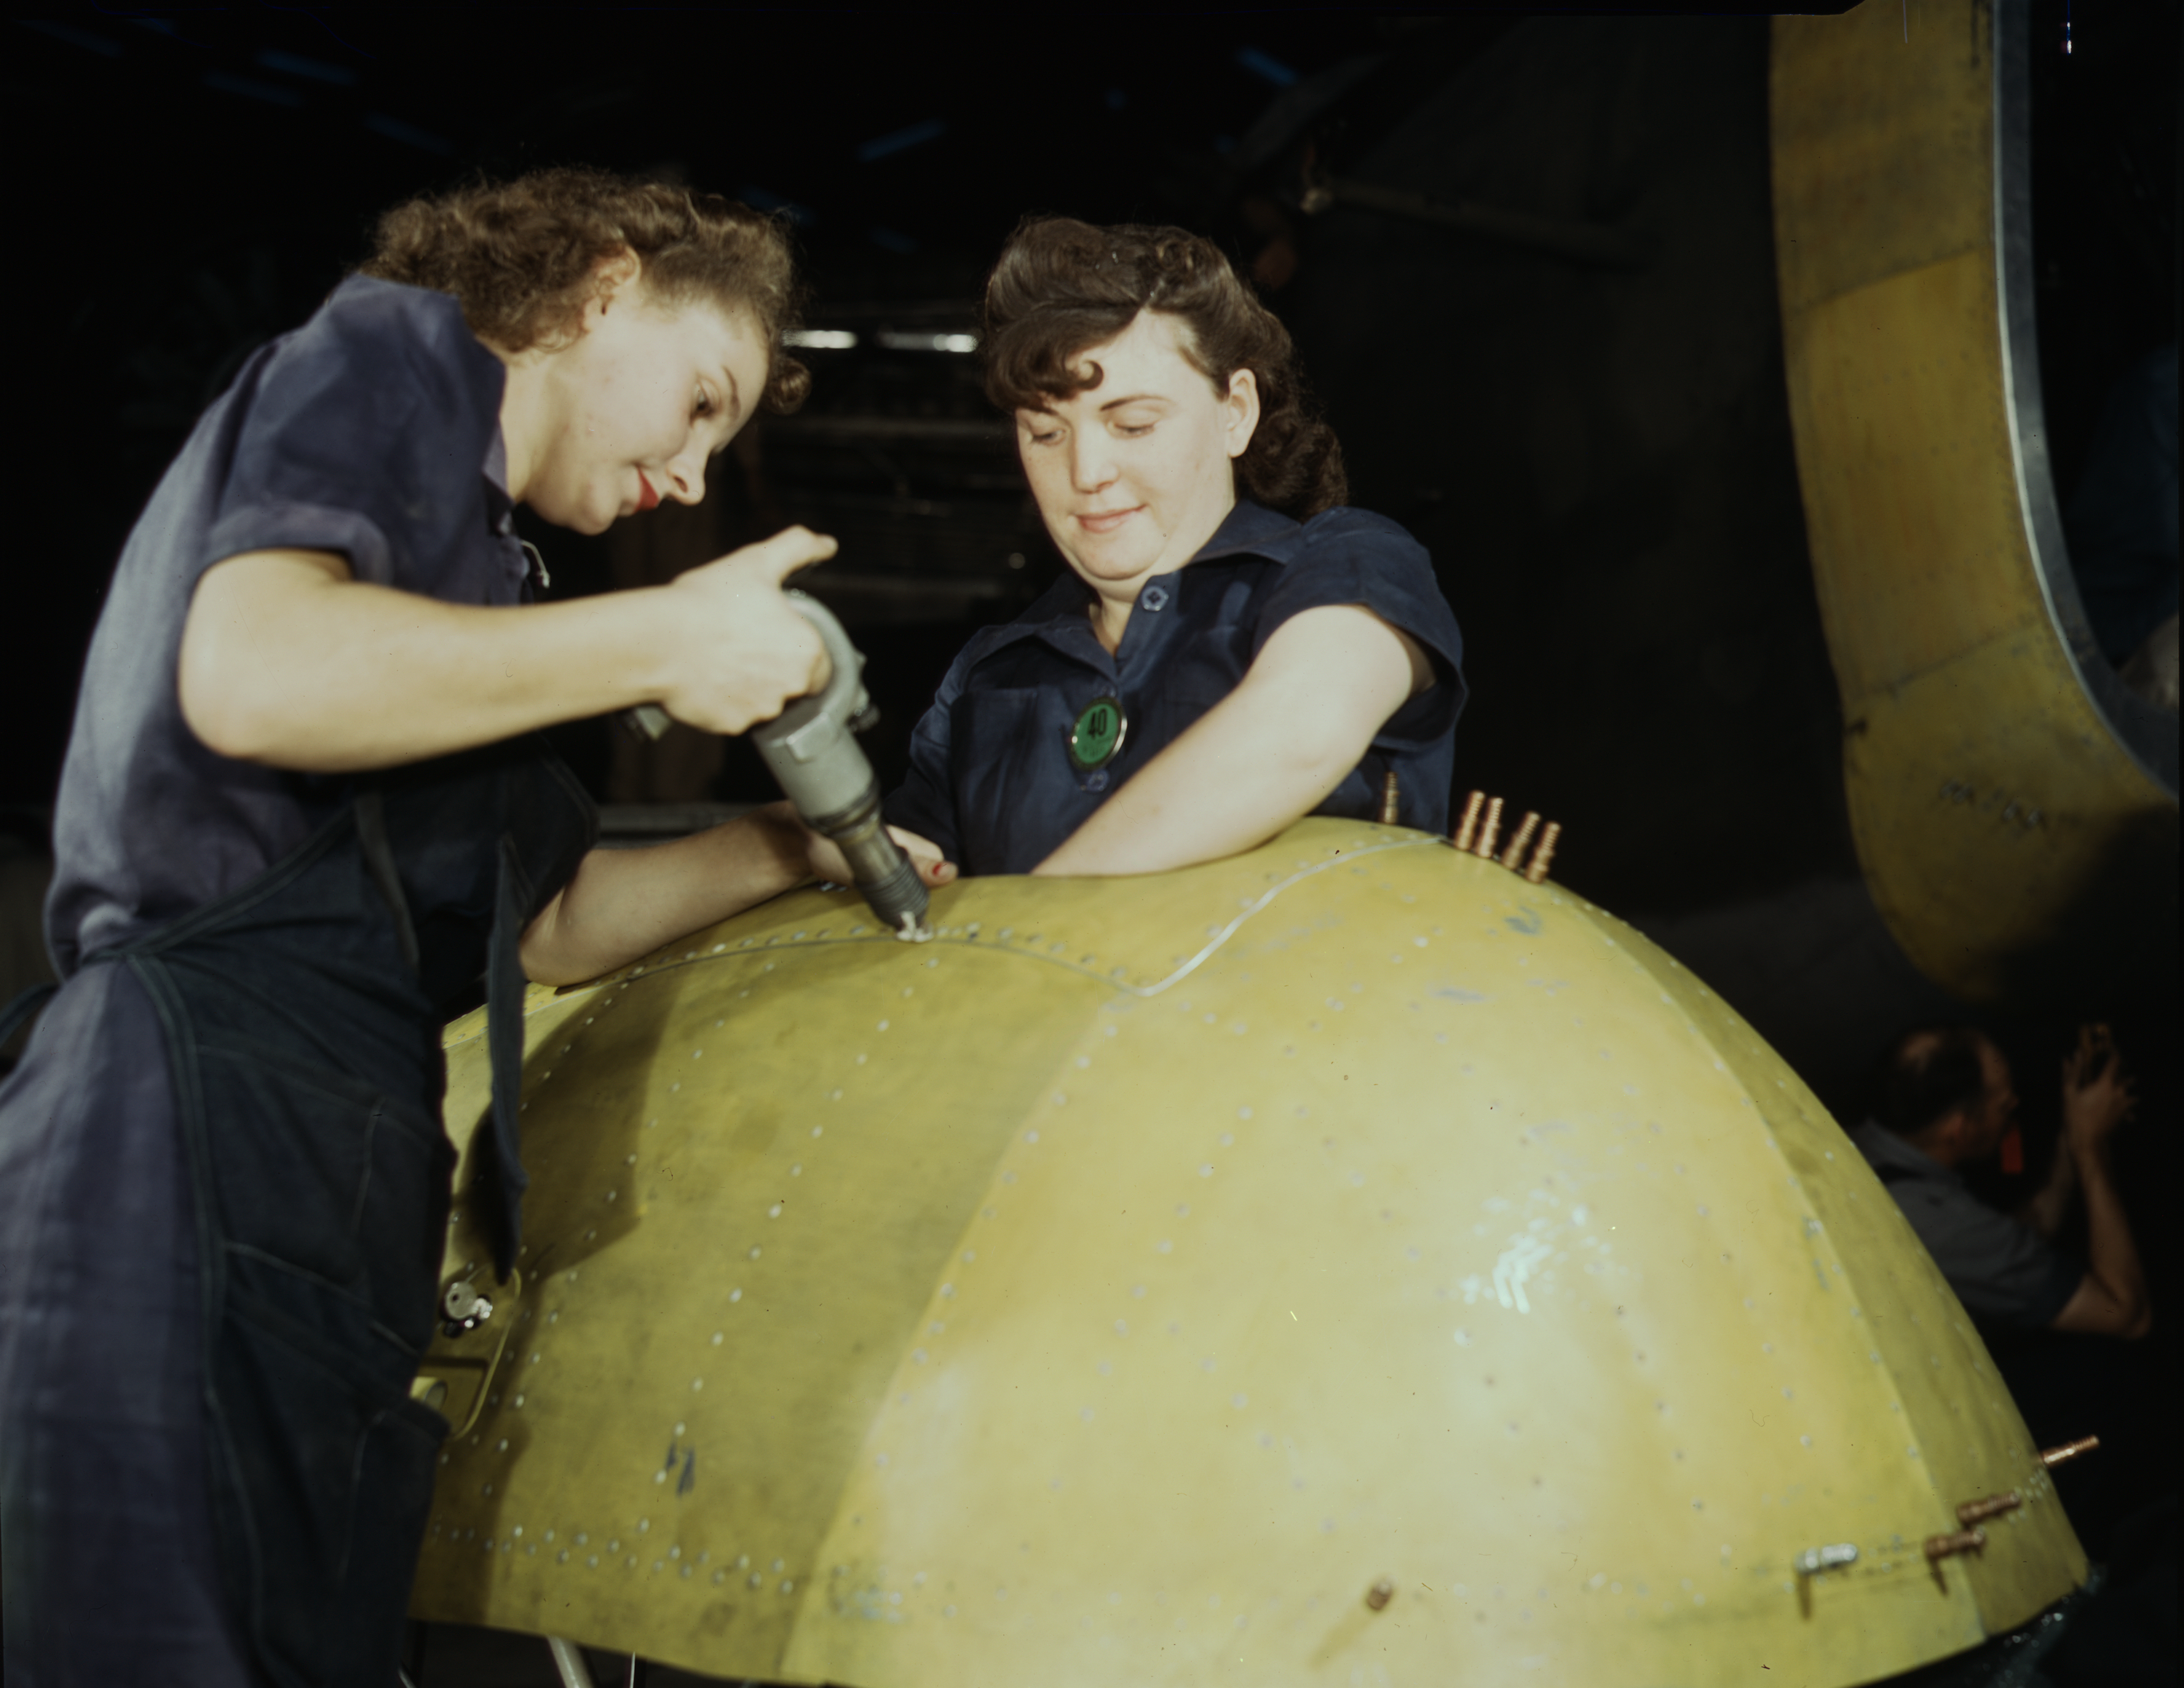 Women Working on a Vengeance Dive Bomber